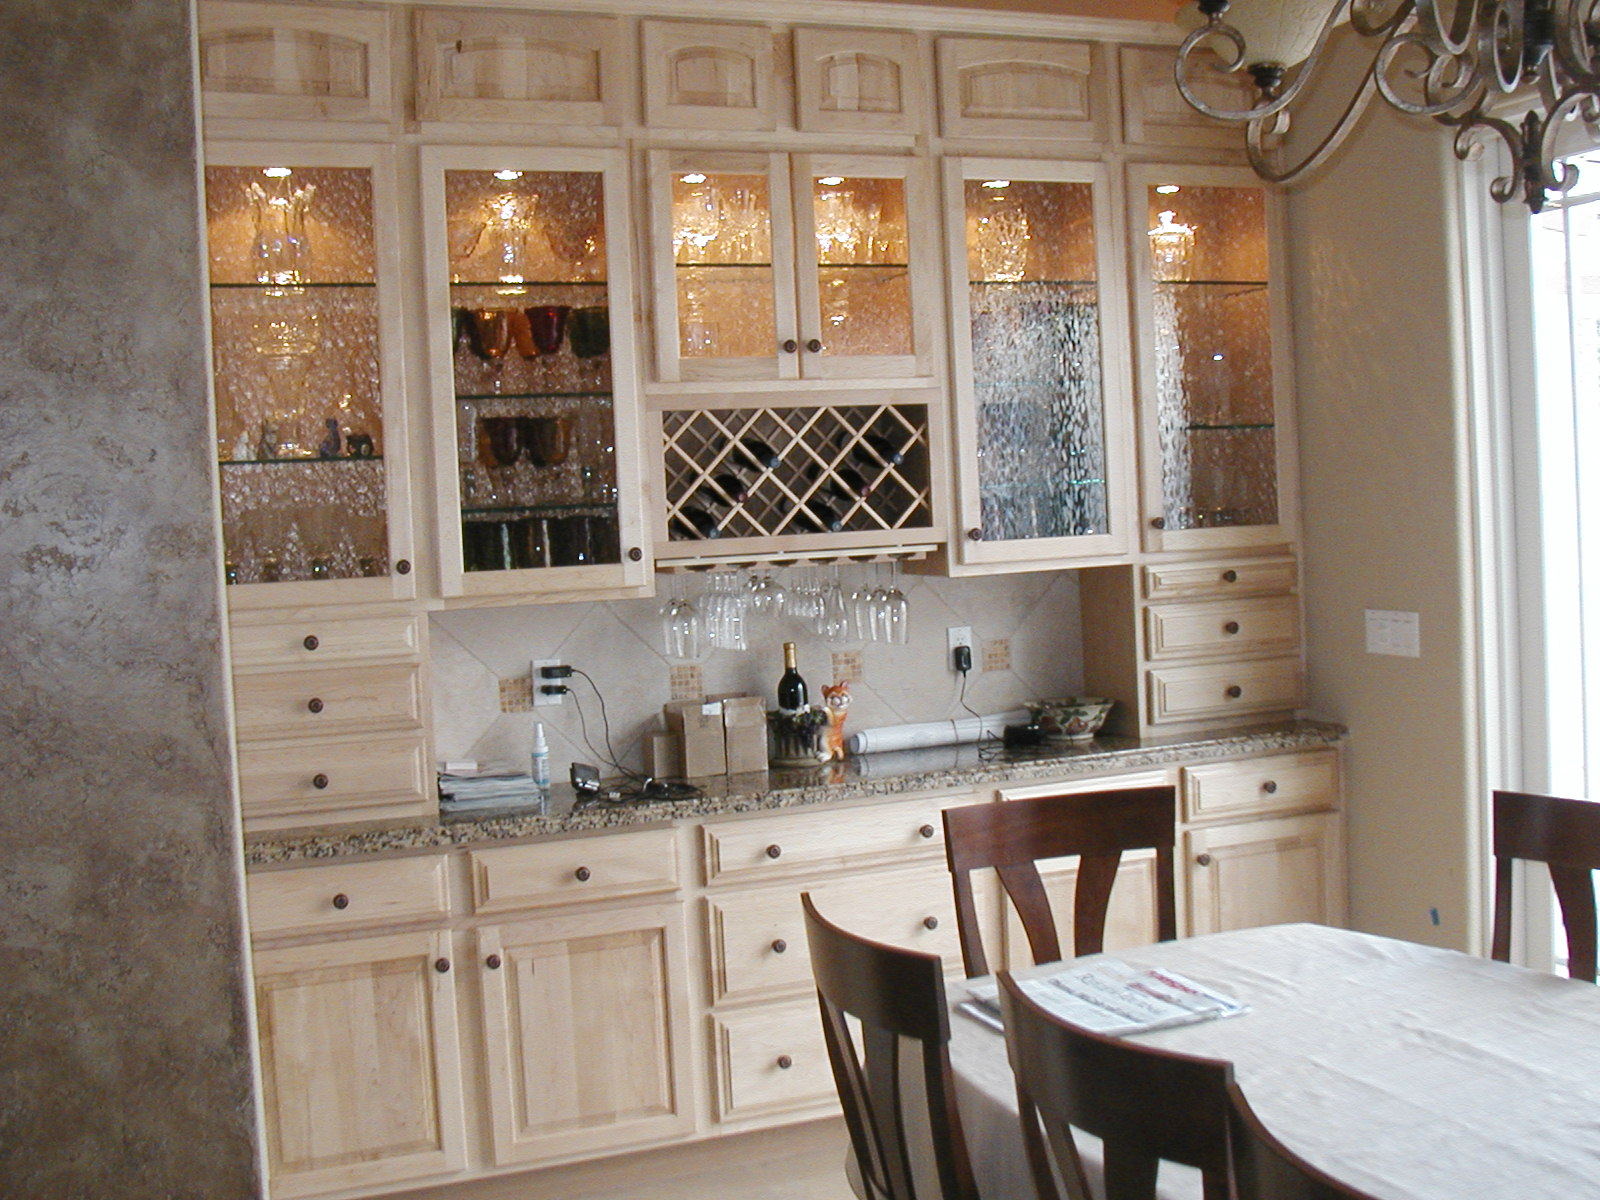 Cabinet refacing looking for firsthand experiences for Cabinet door refacing cost